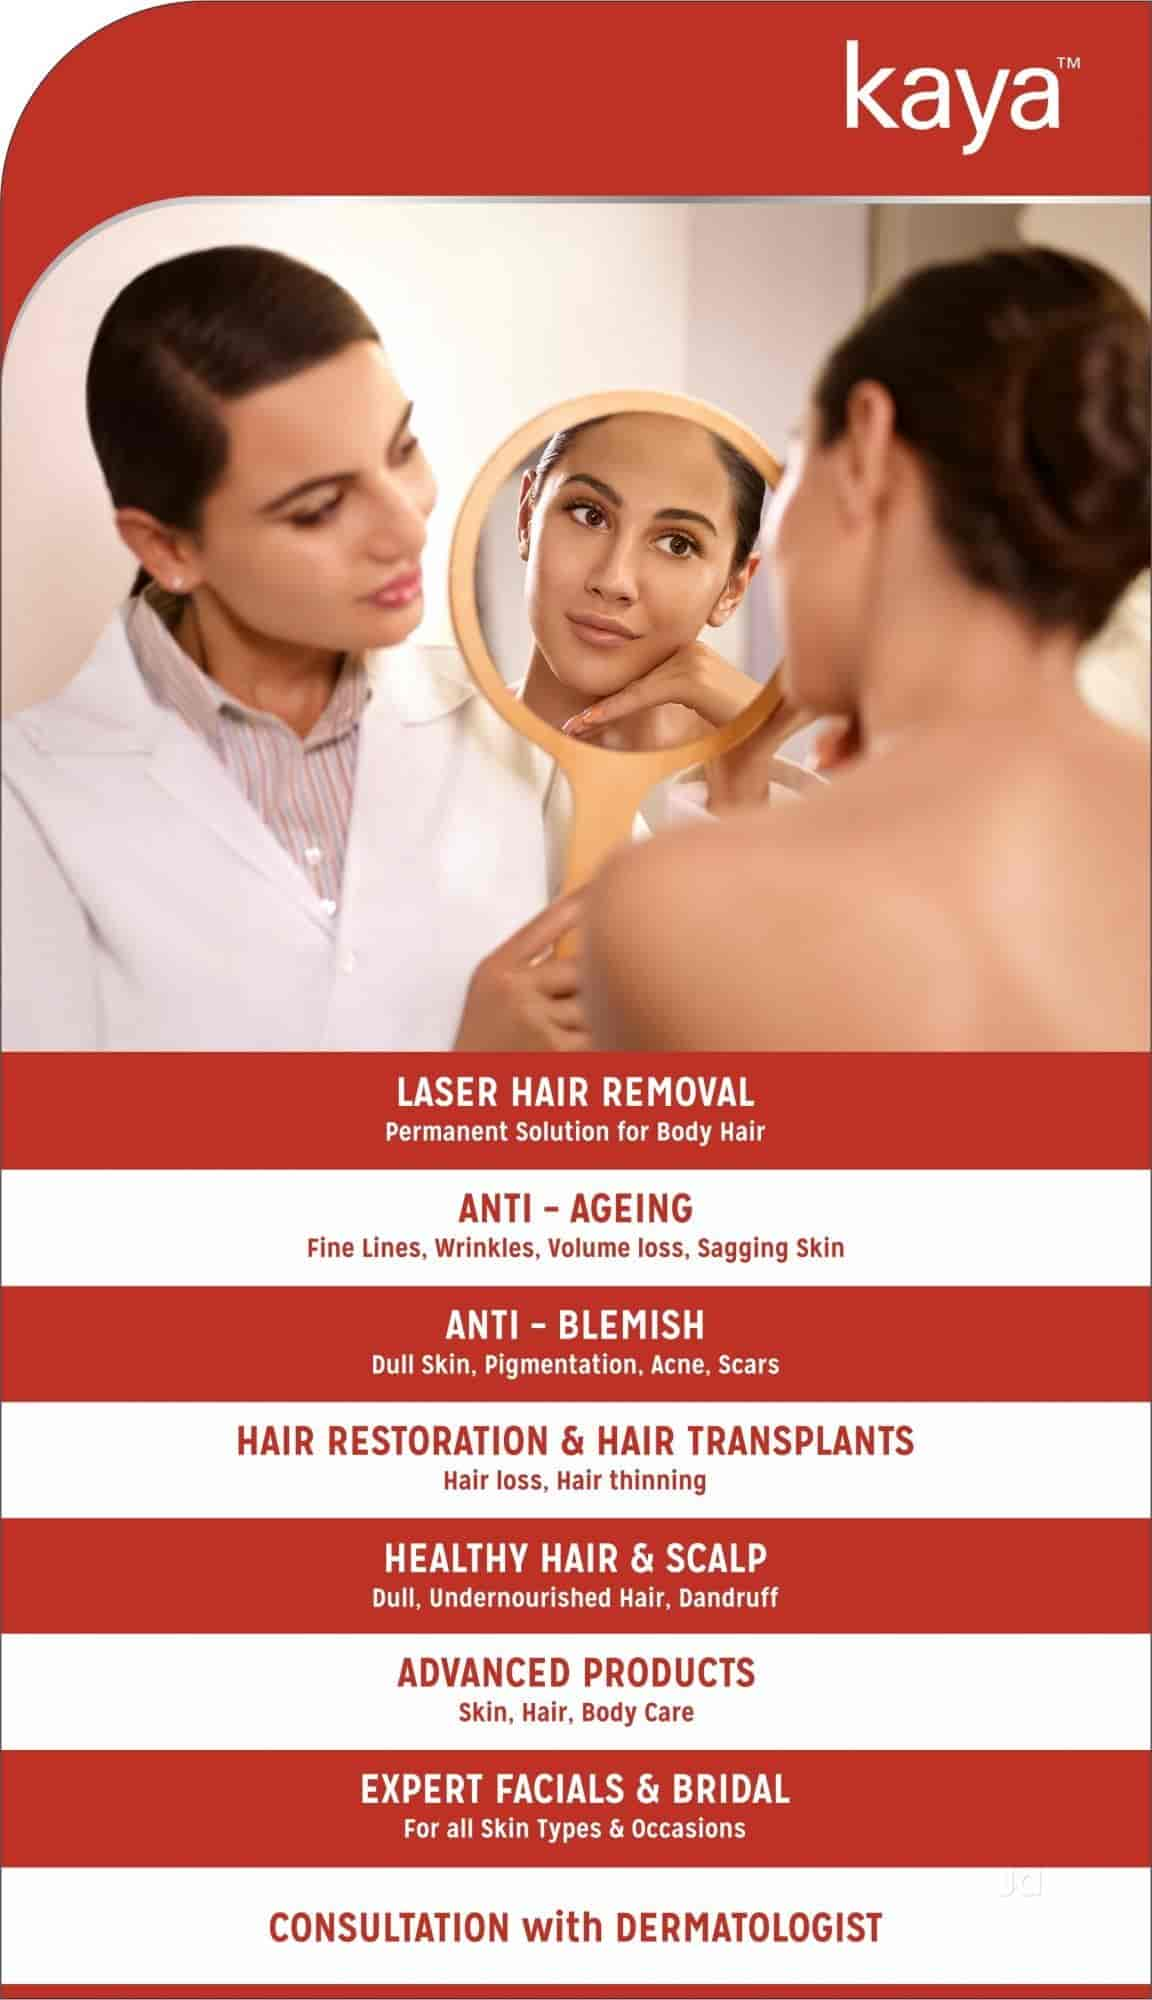 Kaya Skin Clinic - Dermatologists - Book Appointment Online